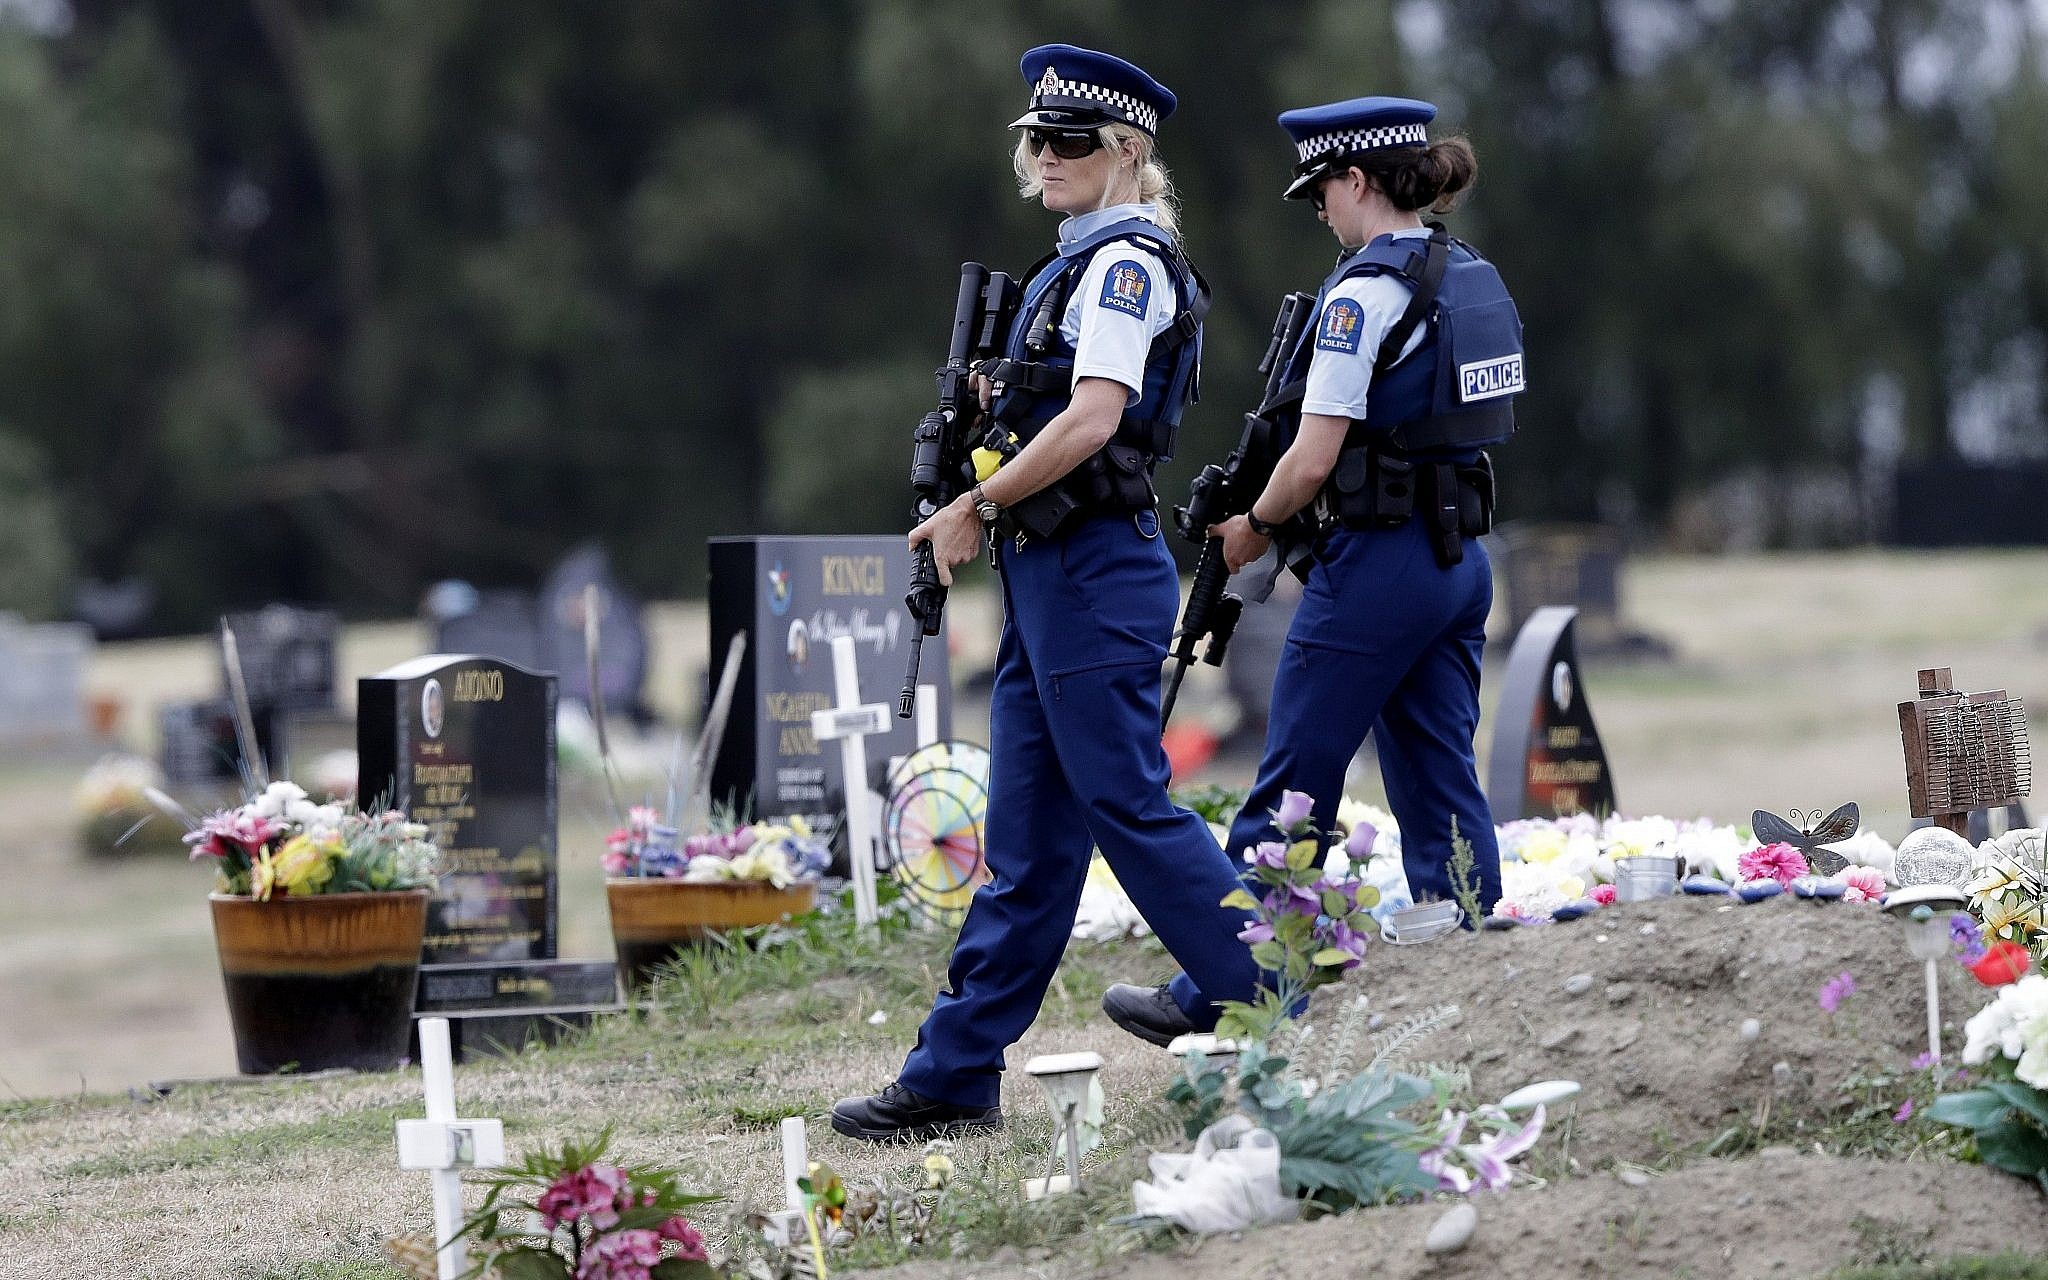 New Zealand gunman acted alone, but may have had support